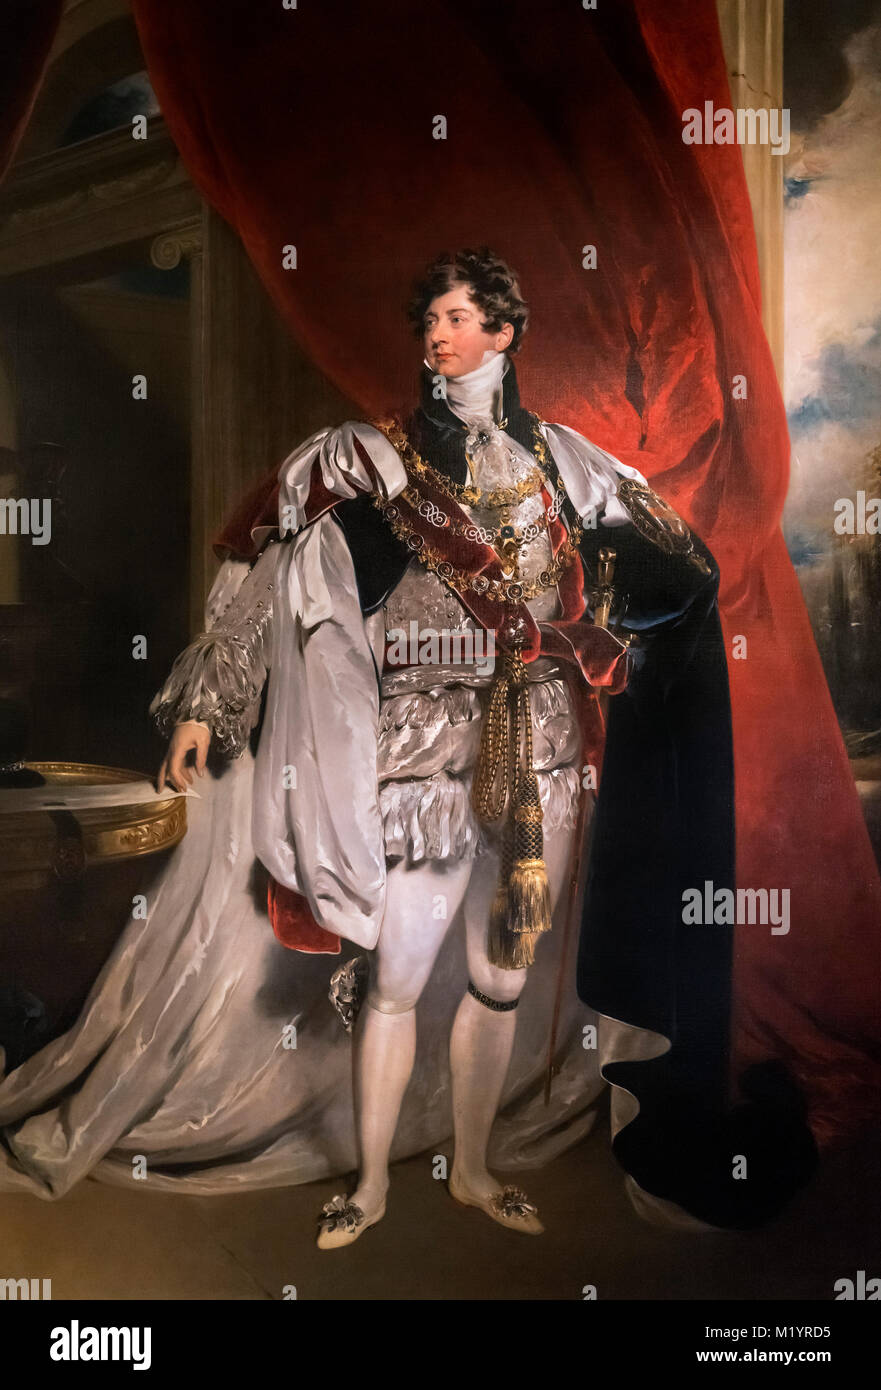 George IV. Portrait of King George IV, attributed to the studio of Sir Thomas Lawrence. - Stock Image